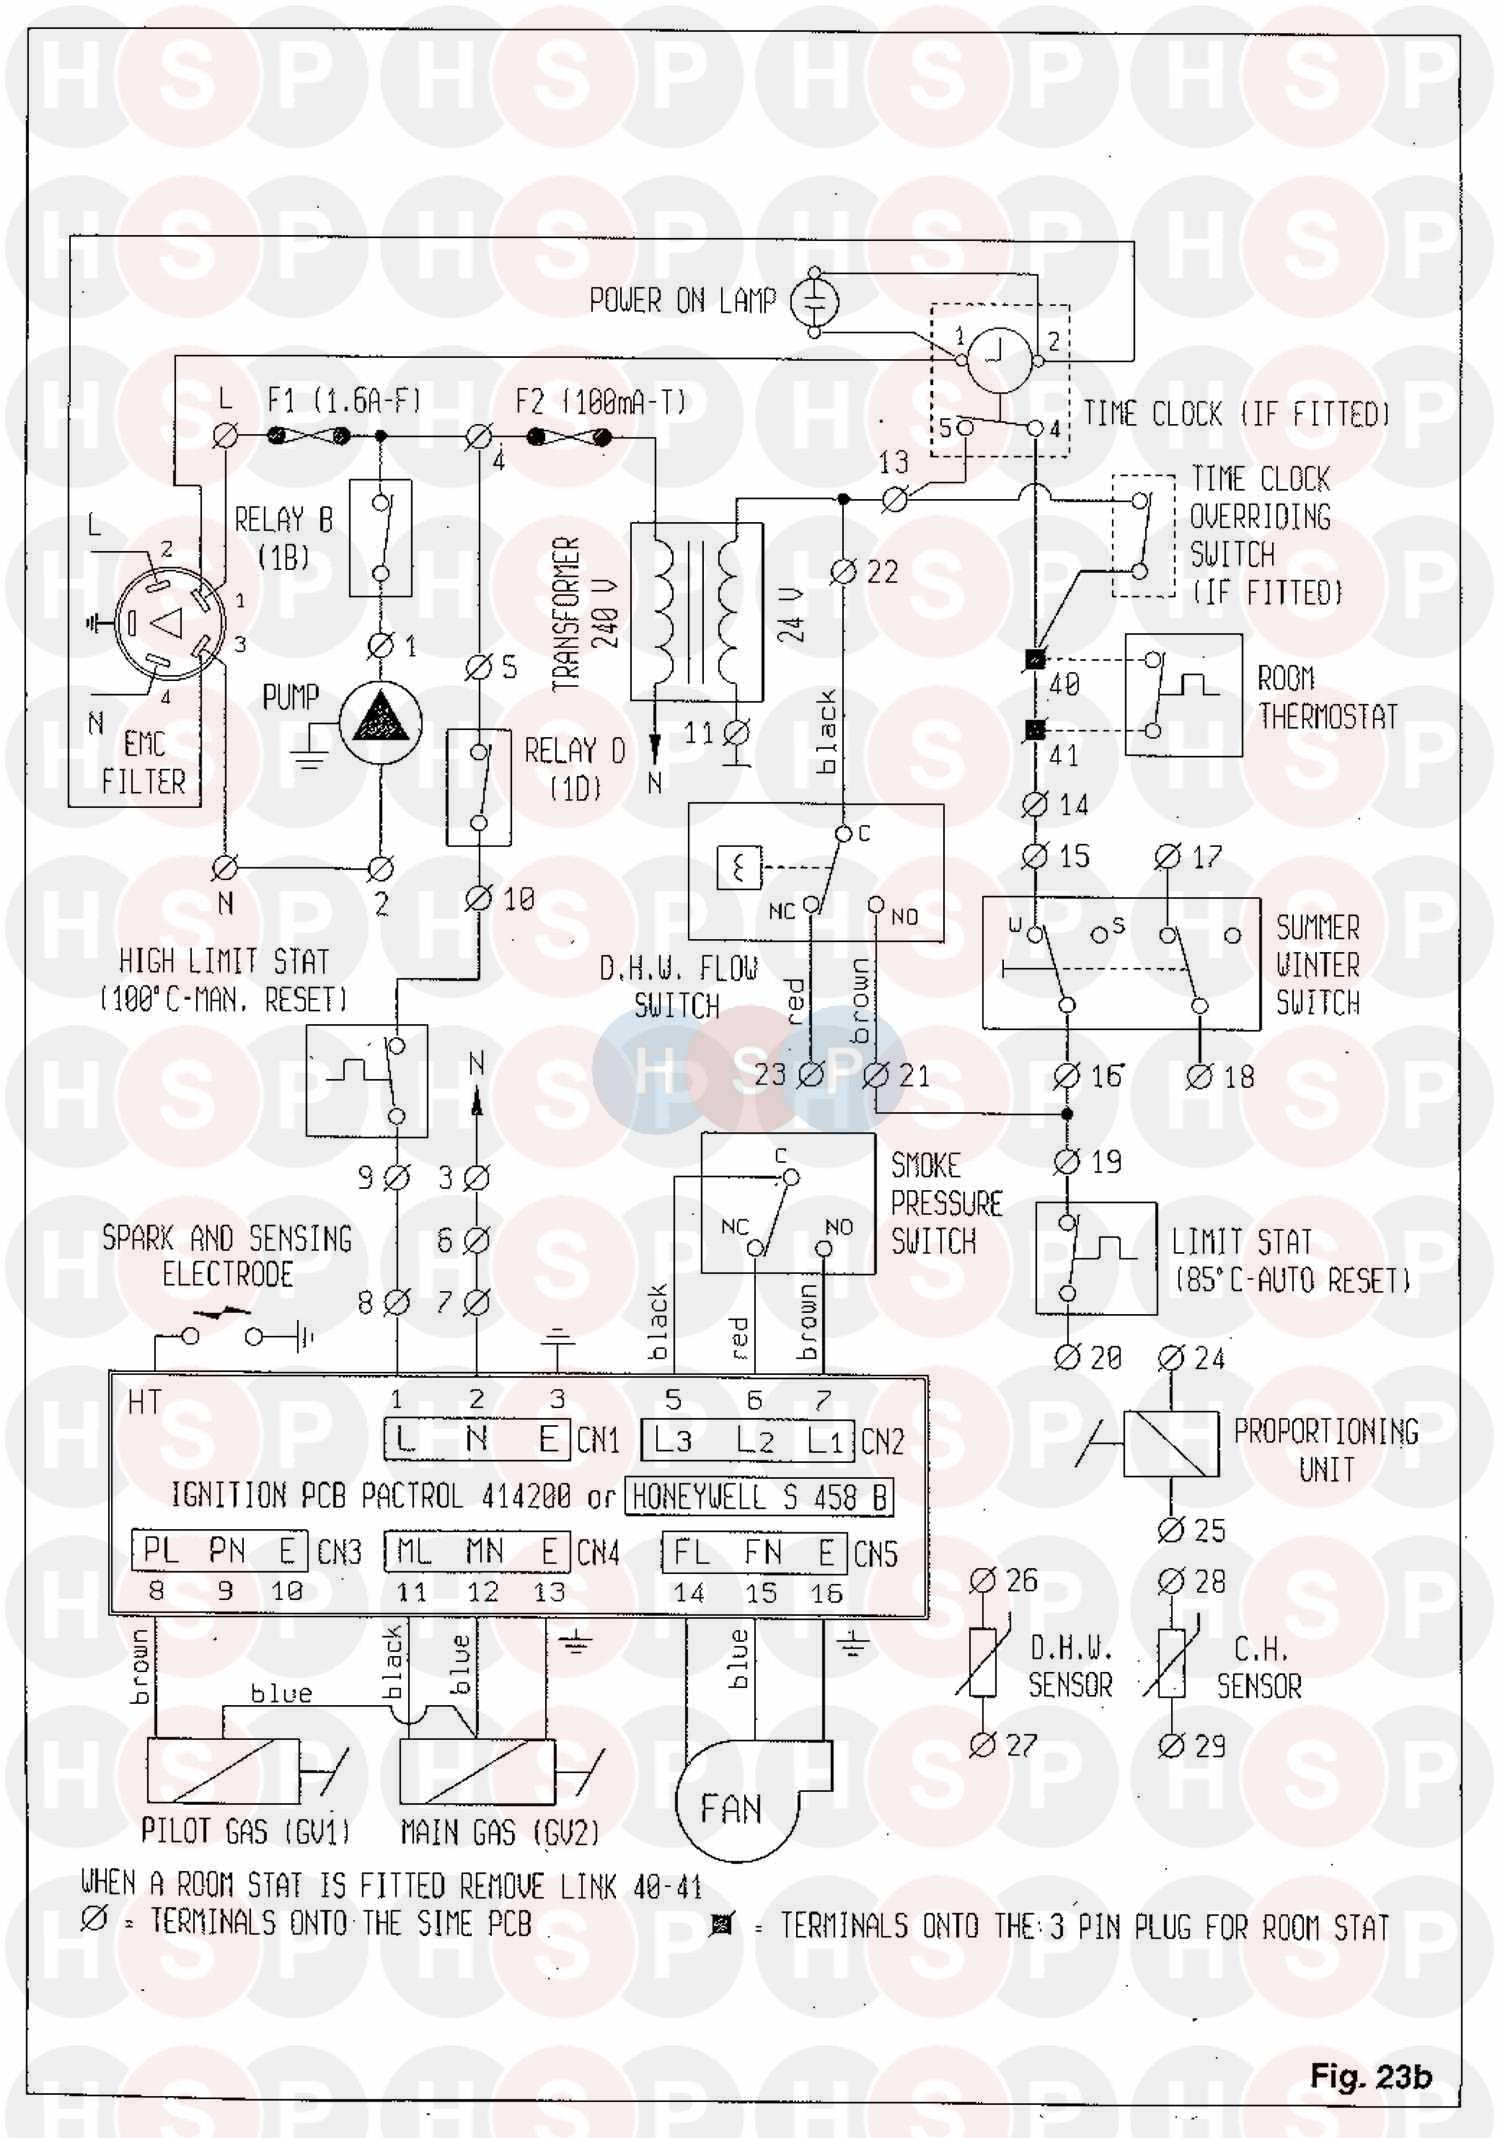 Admirable Sime Super 80 Wiring 2 Diagram Heating Spare Parts Wiring 101 Kniepimsautoservicenl